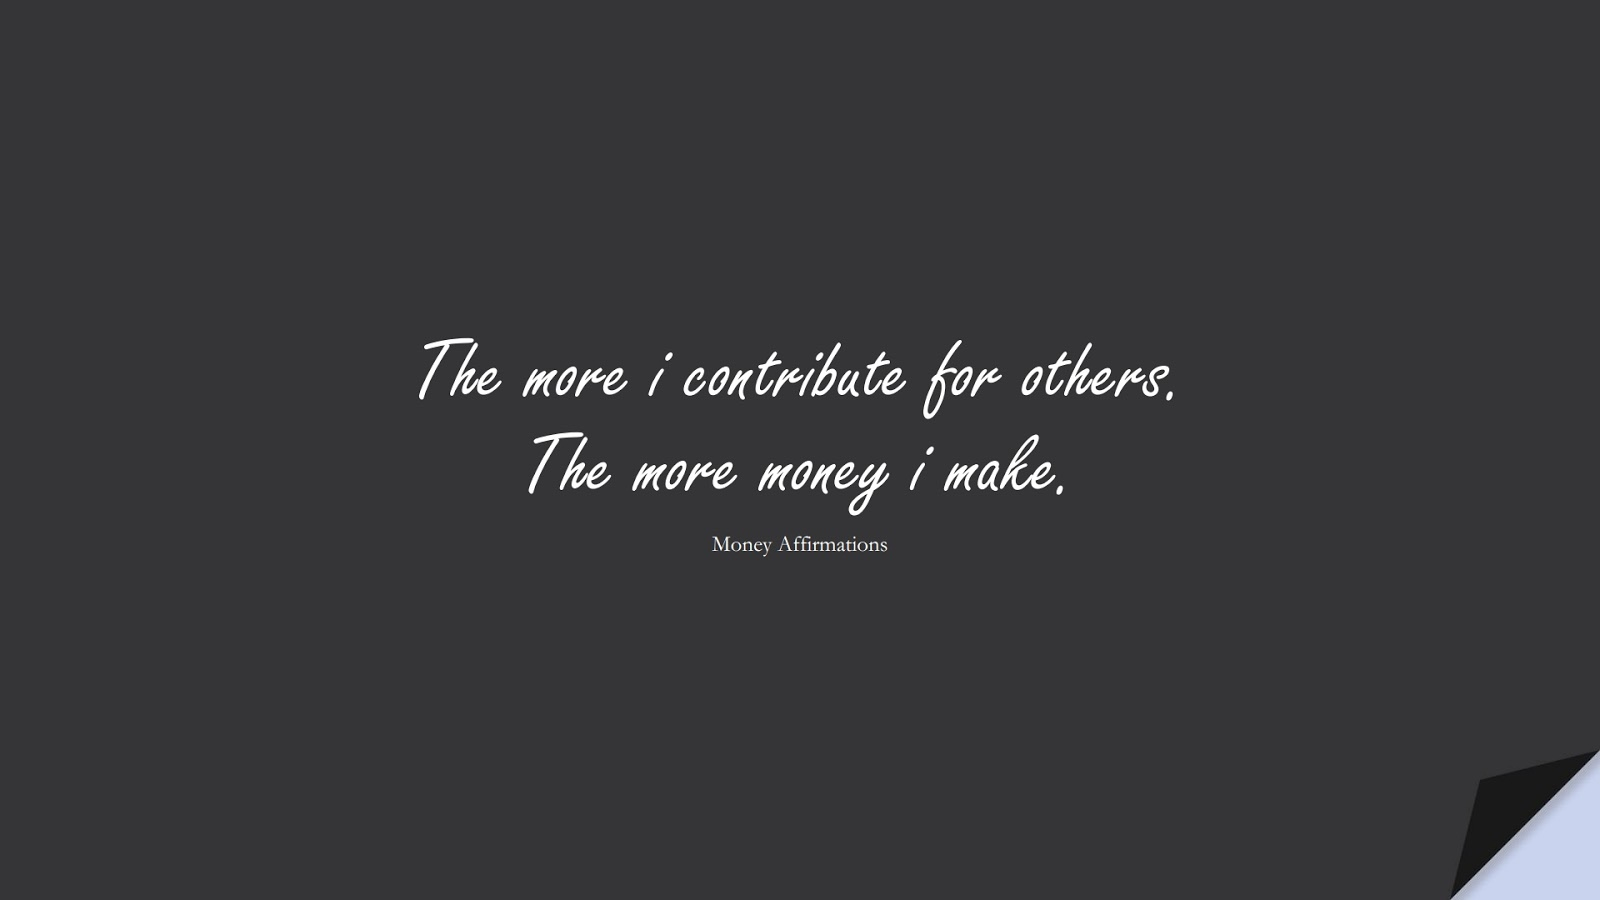 The more i contribute for others. The more money i make. (Money Affirmations);  #MoneyQuotes